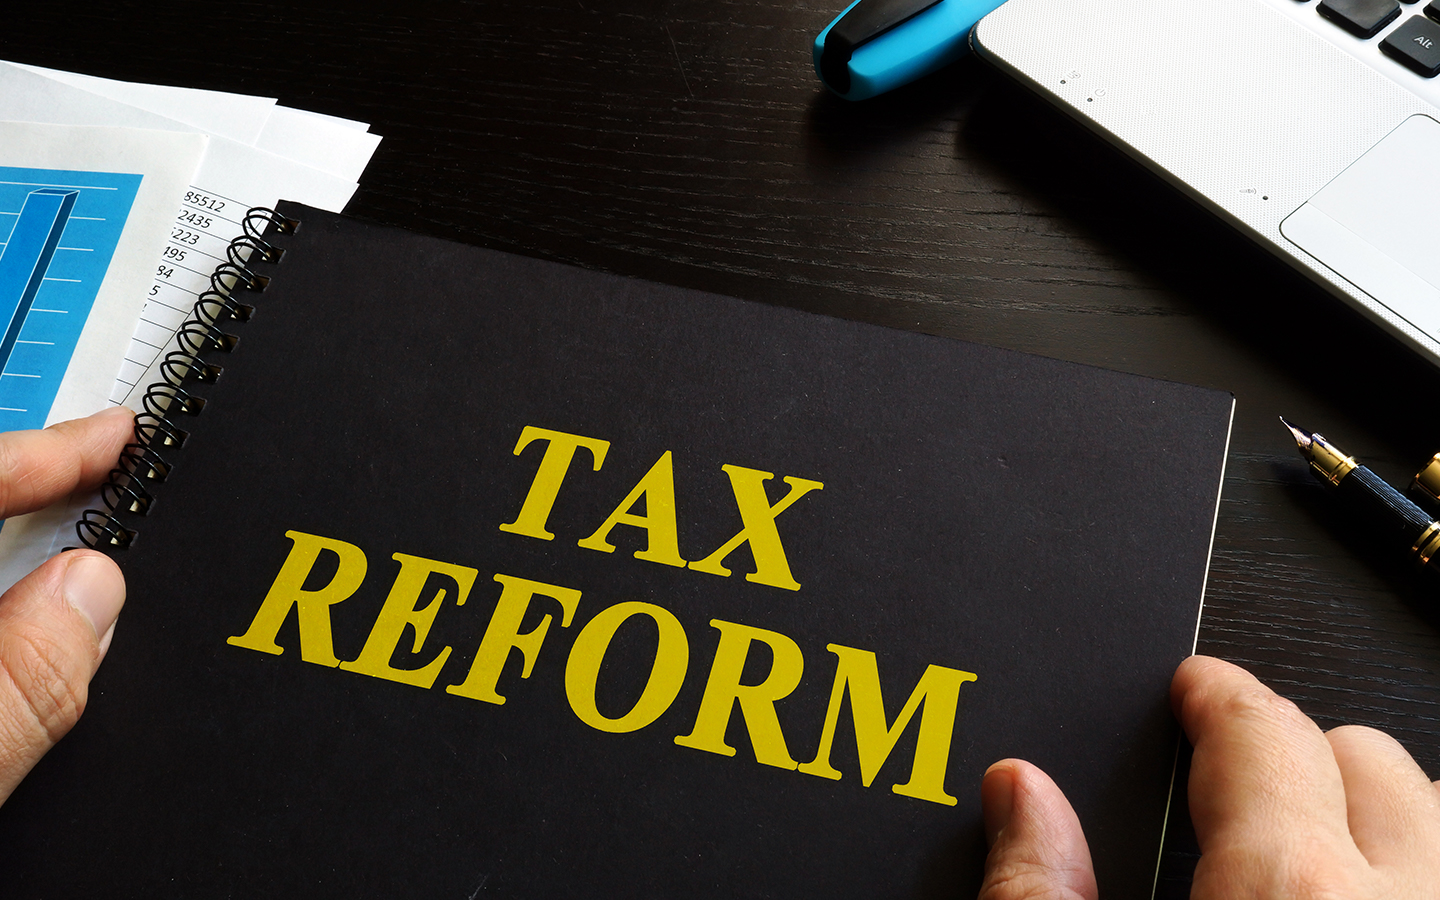 How Trump's 2018 Tax Reform is Affecting Your Business 6 Things You Need to Know Now